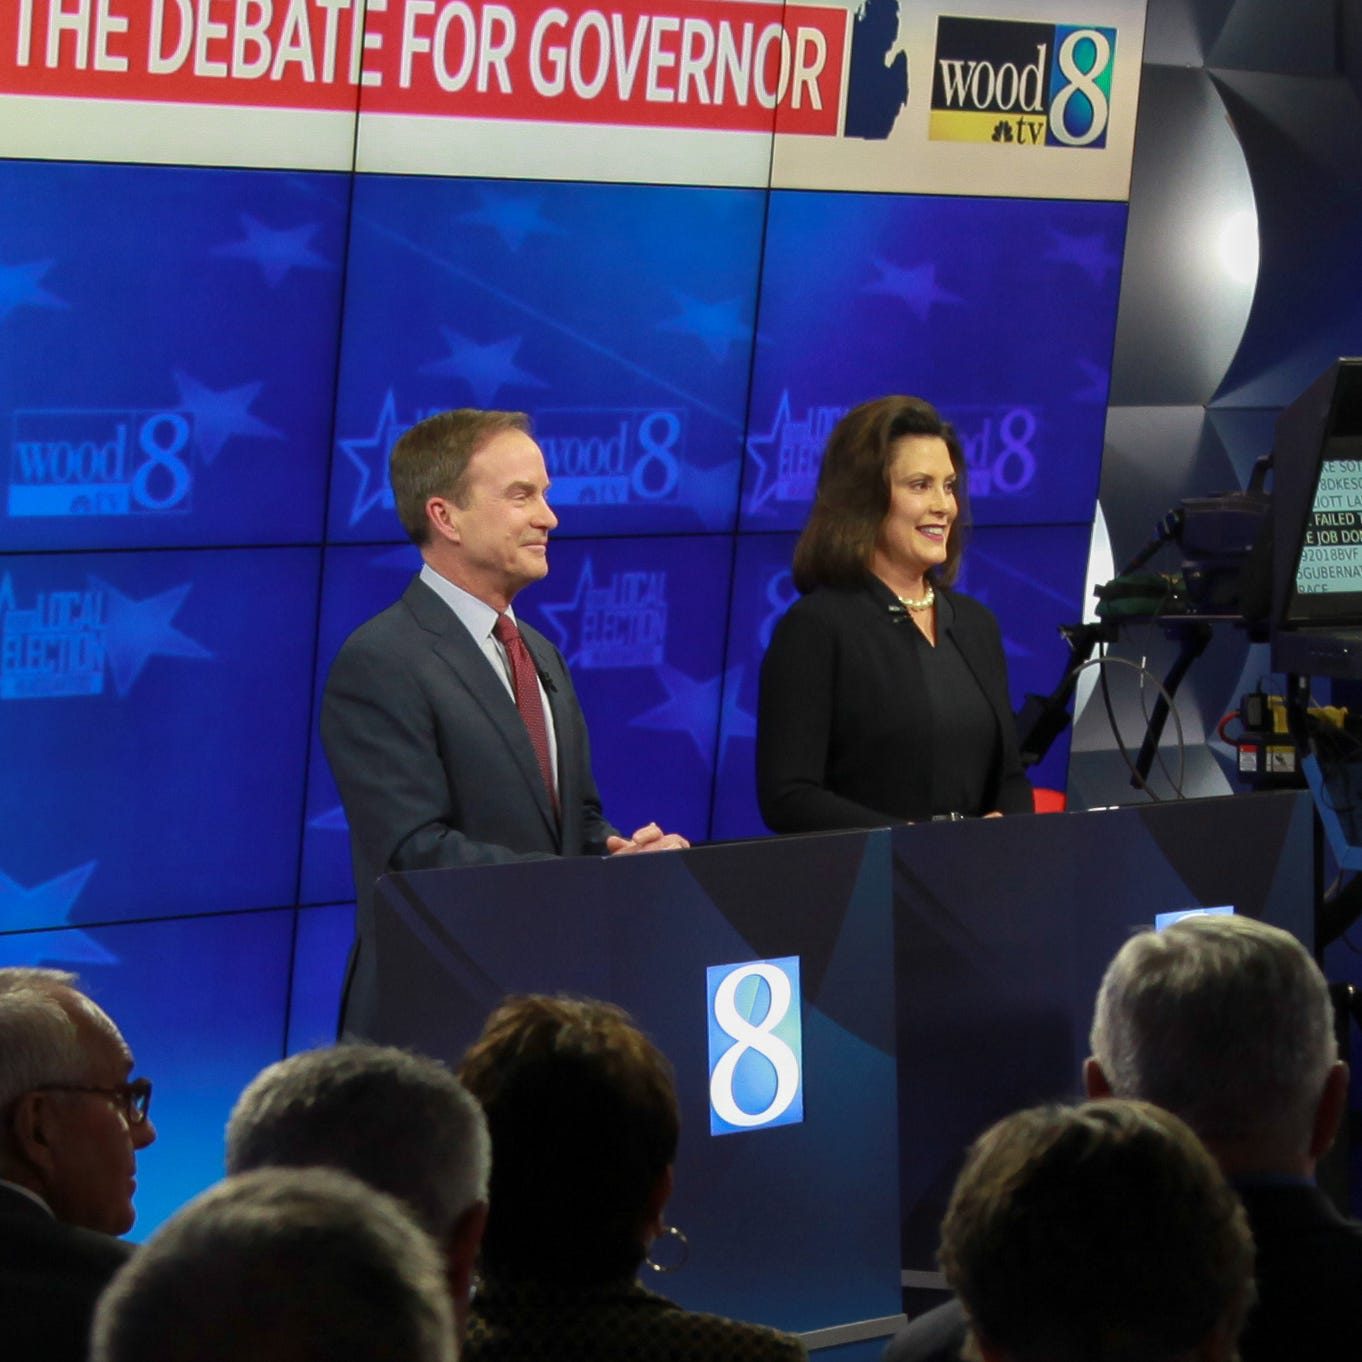 Finley: Gov debate? Next time I'll choose Pat and Vanna